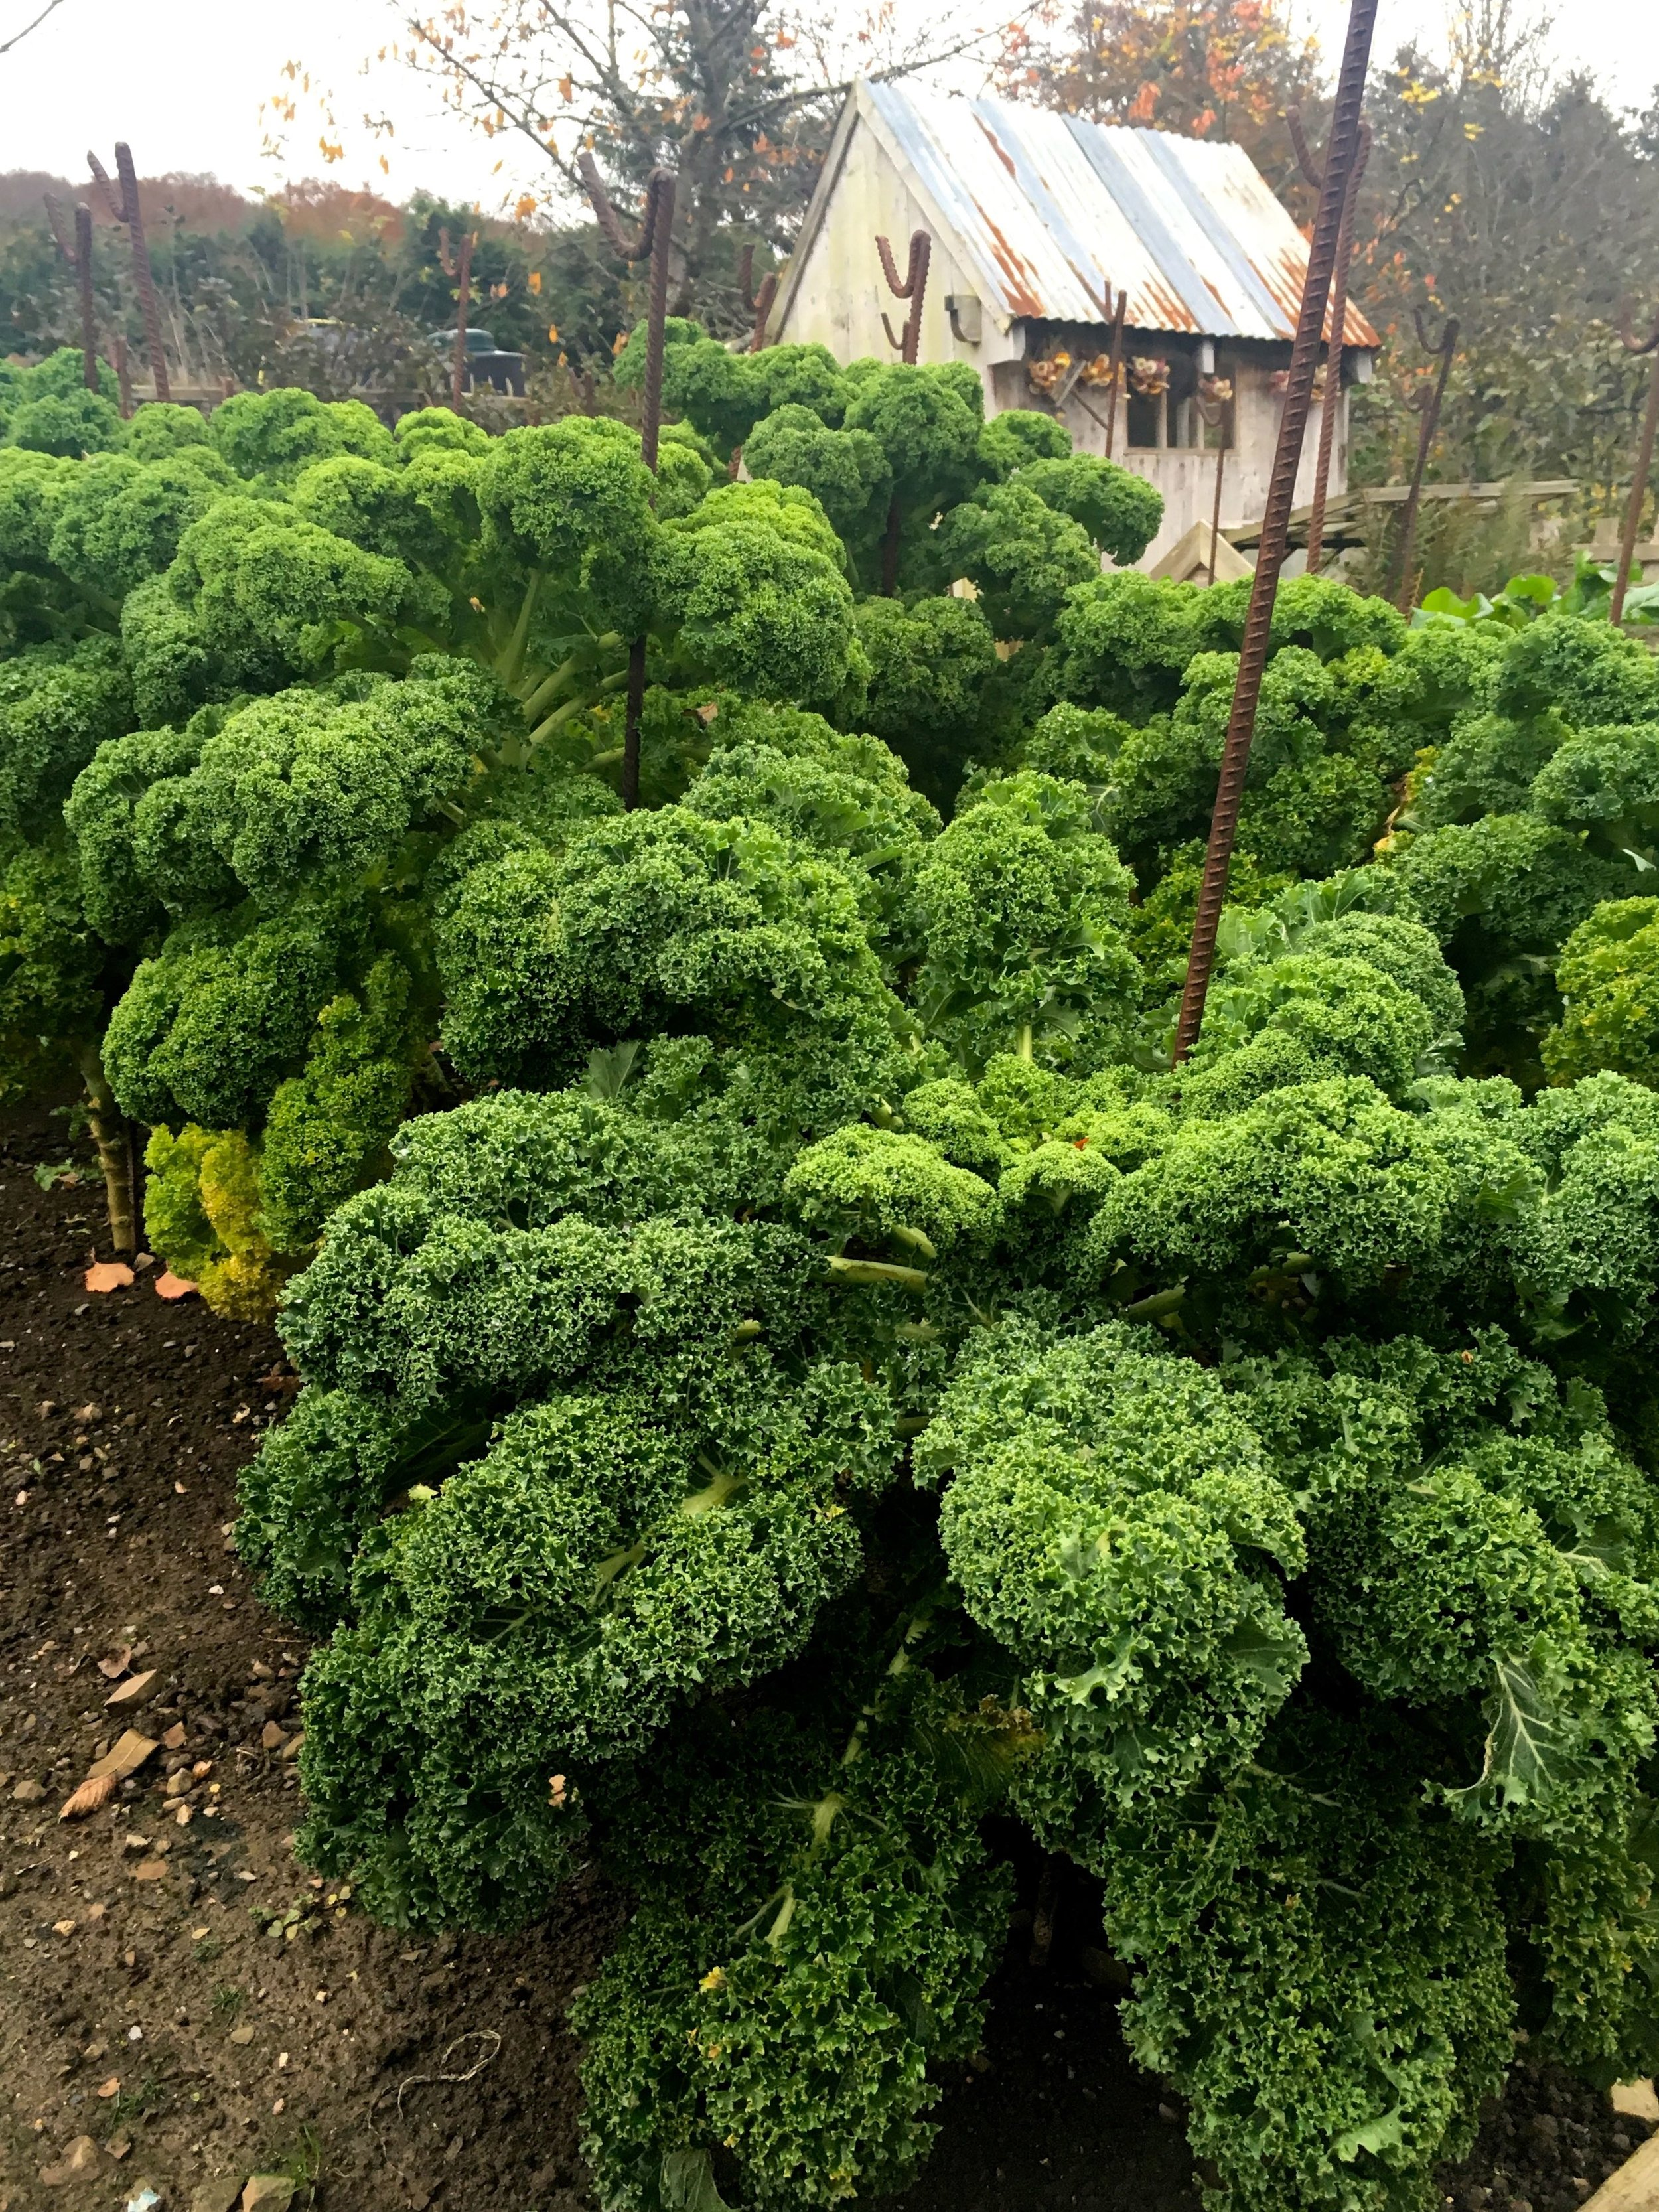 curly kale and a shed